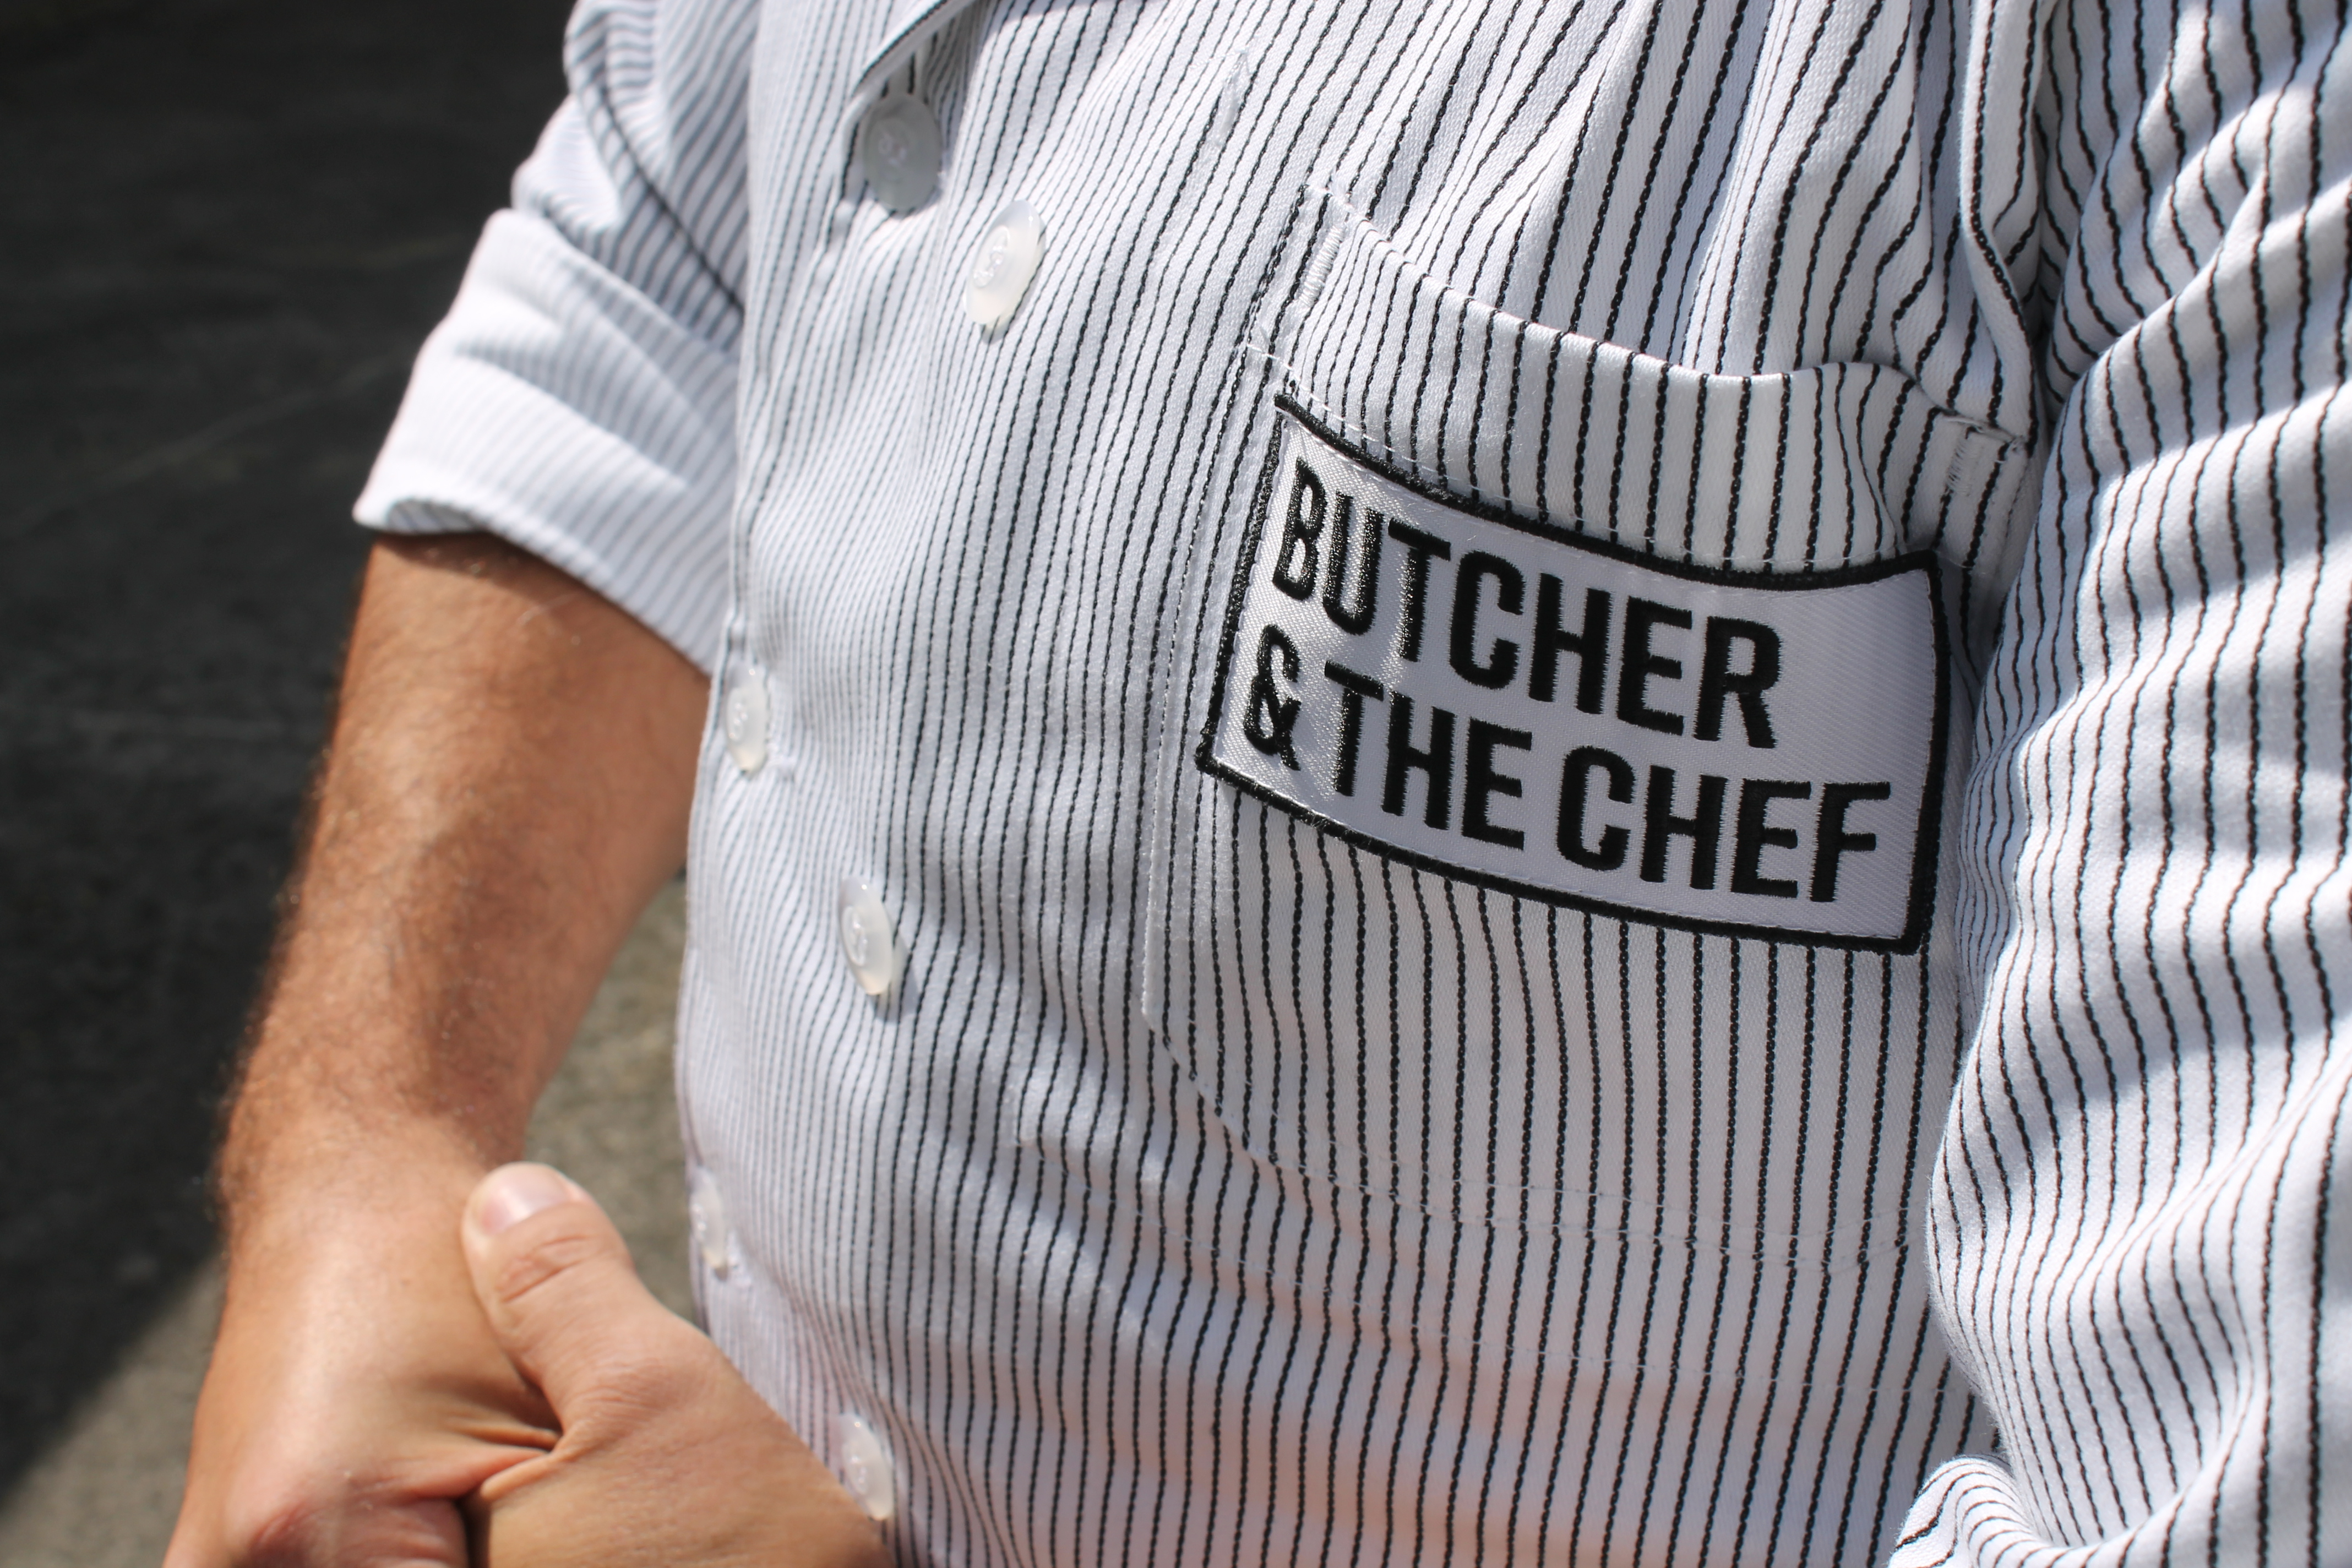 Butcher & the Chef